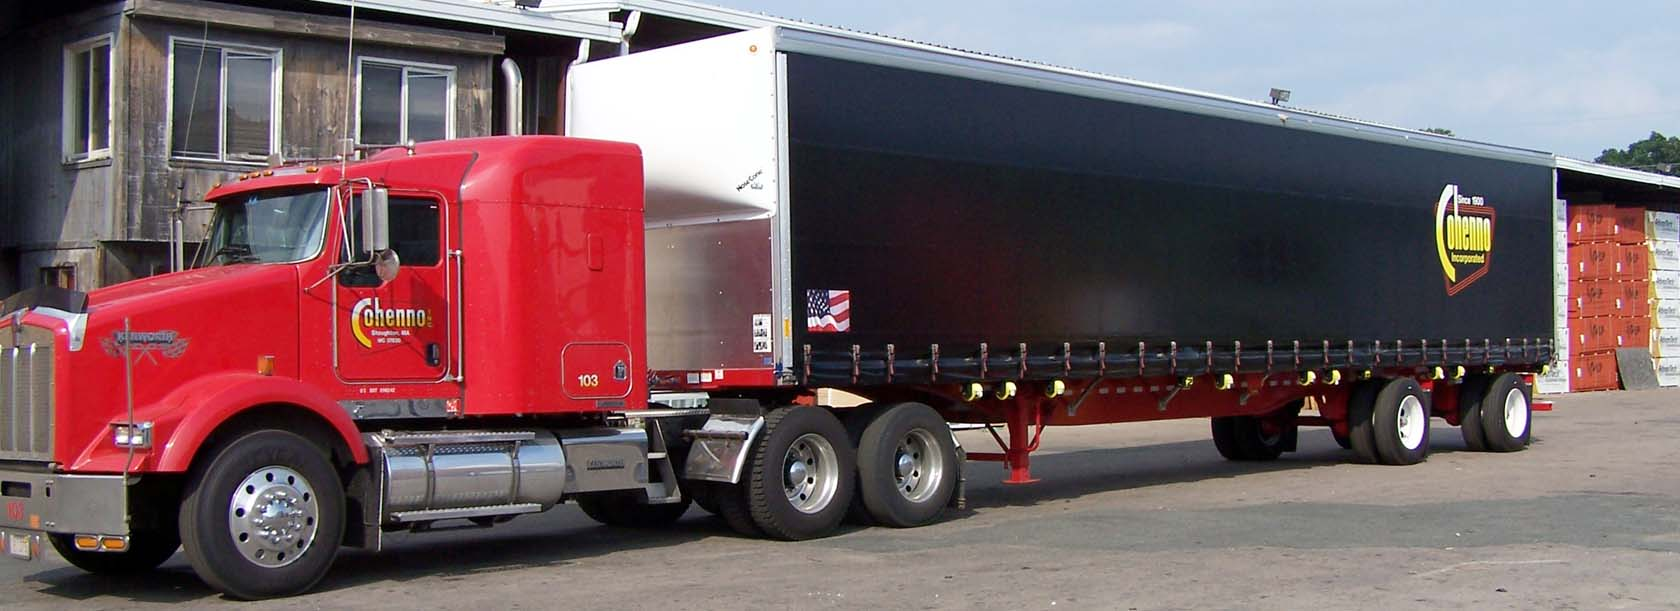 We will fabricate your Curtainside systems specifically to meet your custom trailer specifications.